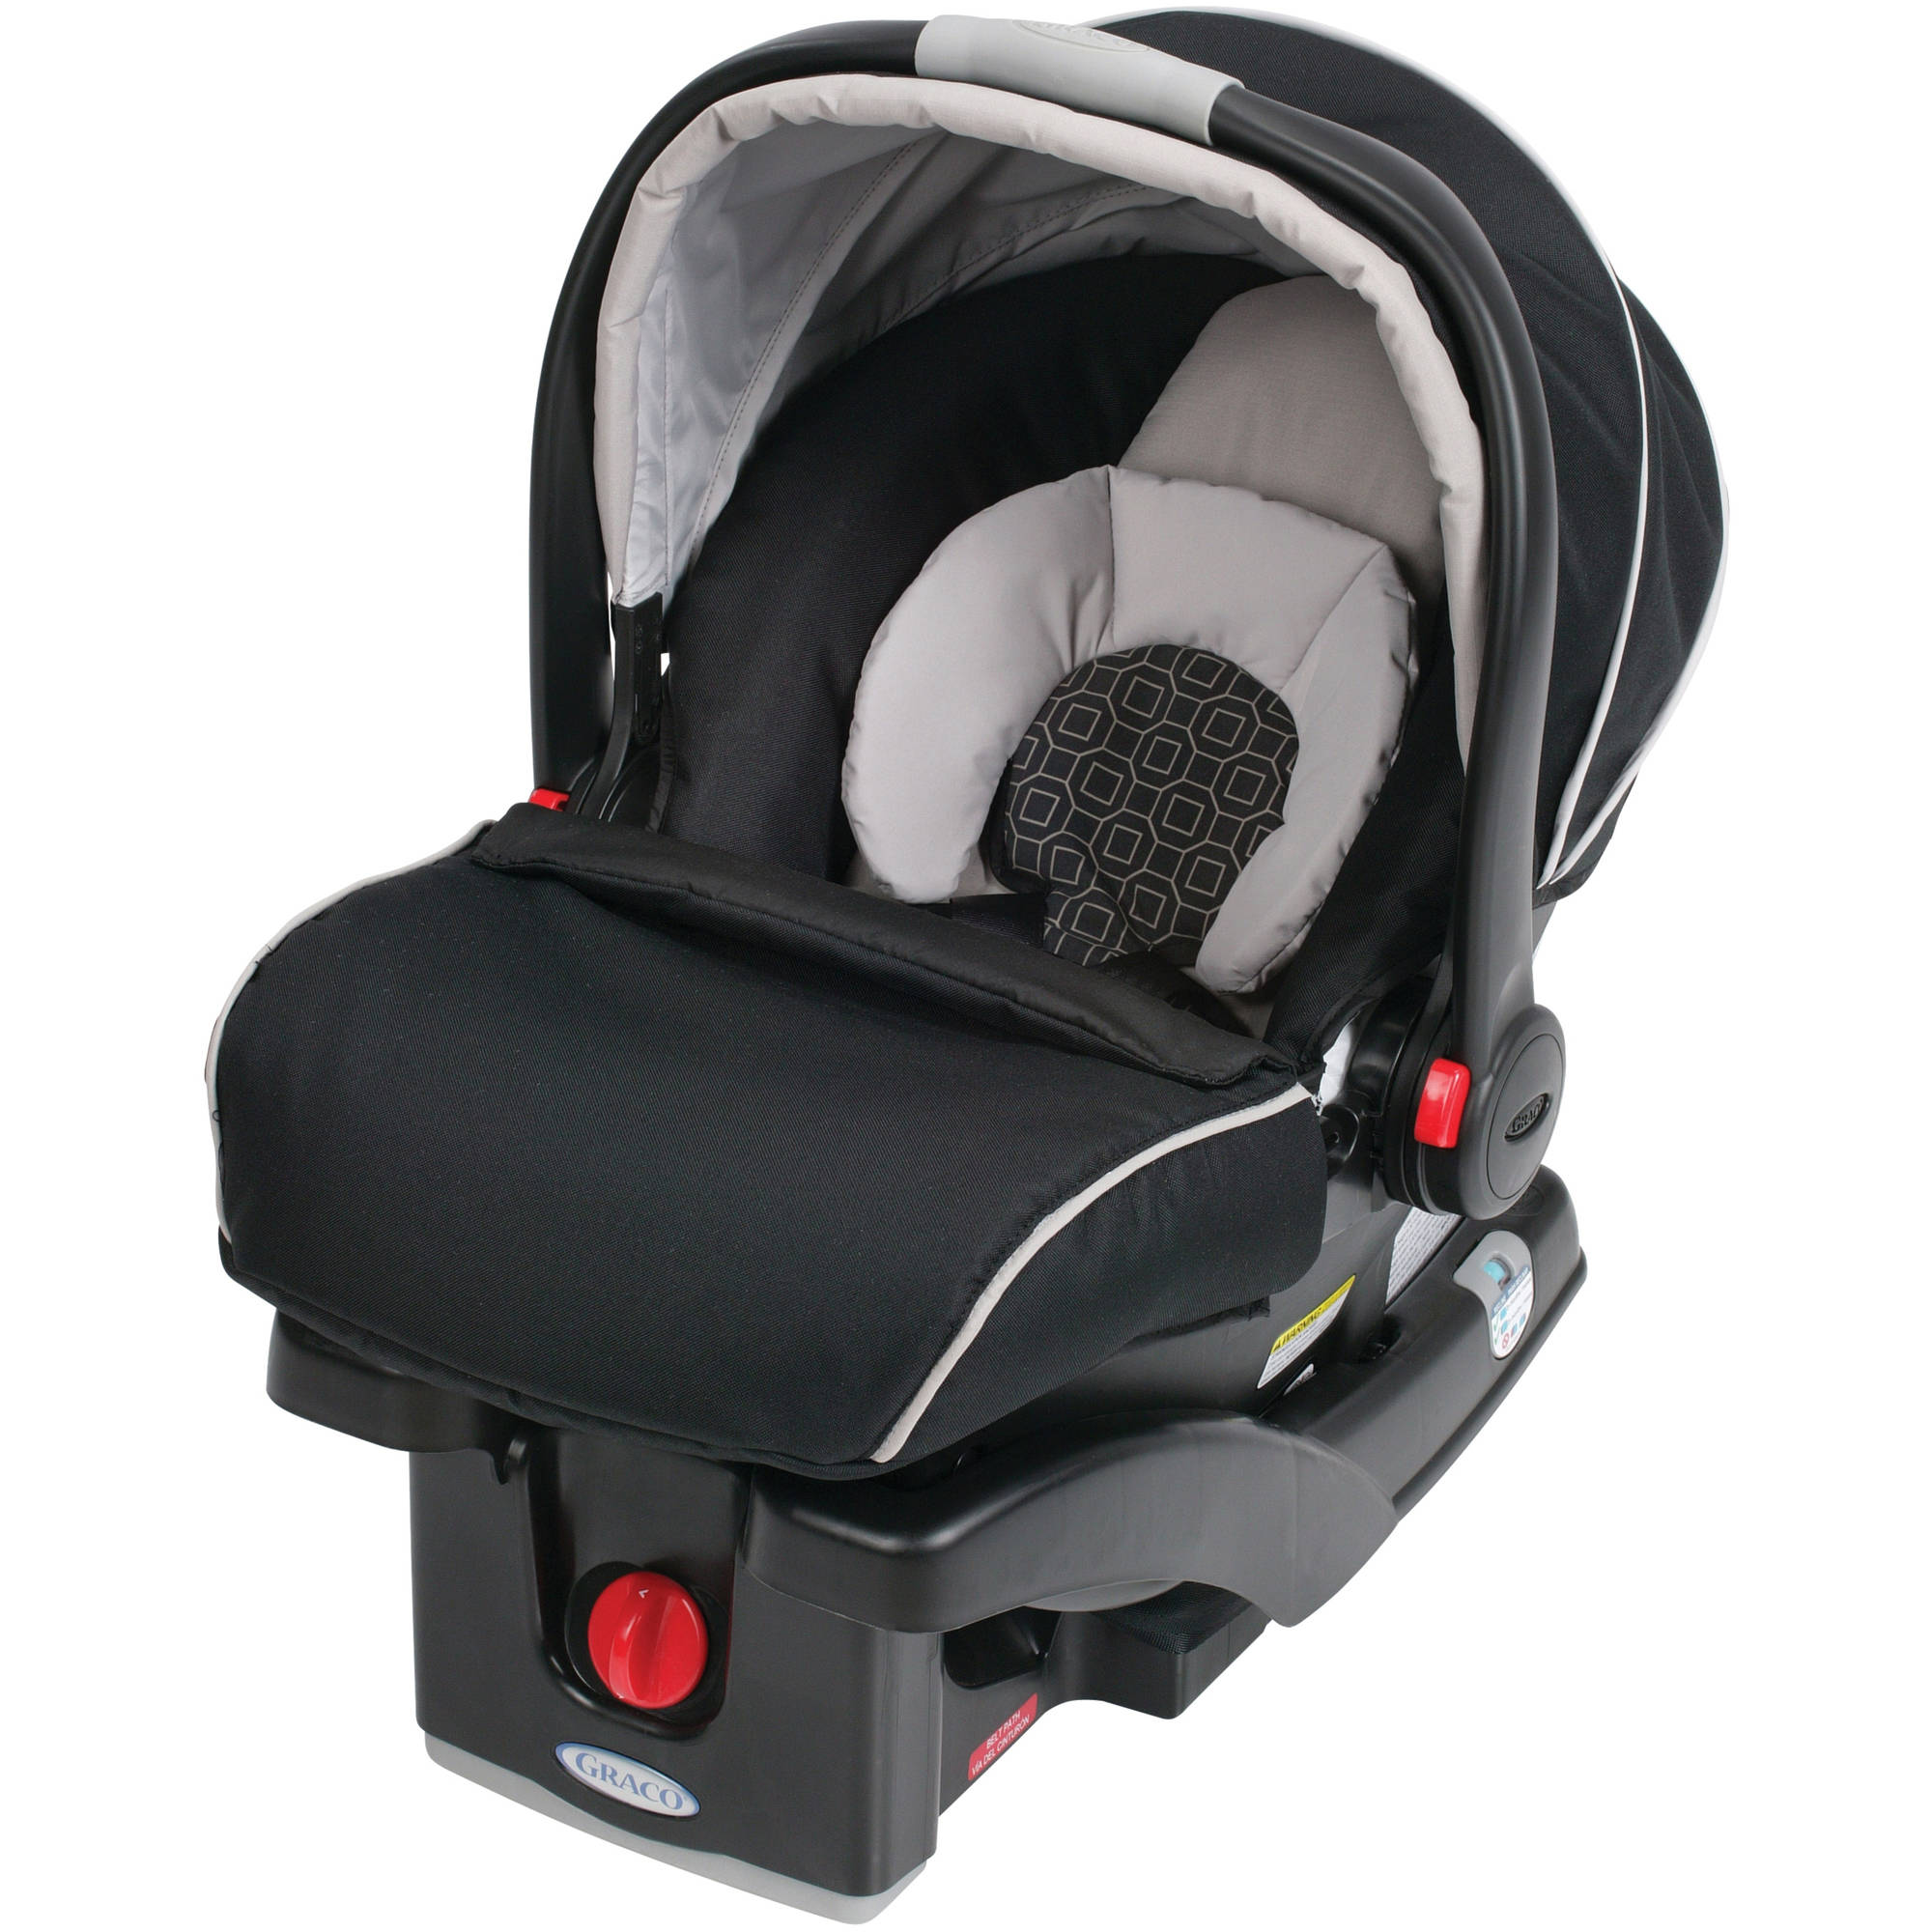 58a7eb4ff66 Details about Graco SnugRide Click Connect 35 Infant Car Seat with Boot